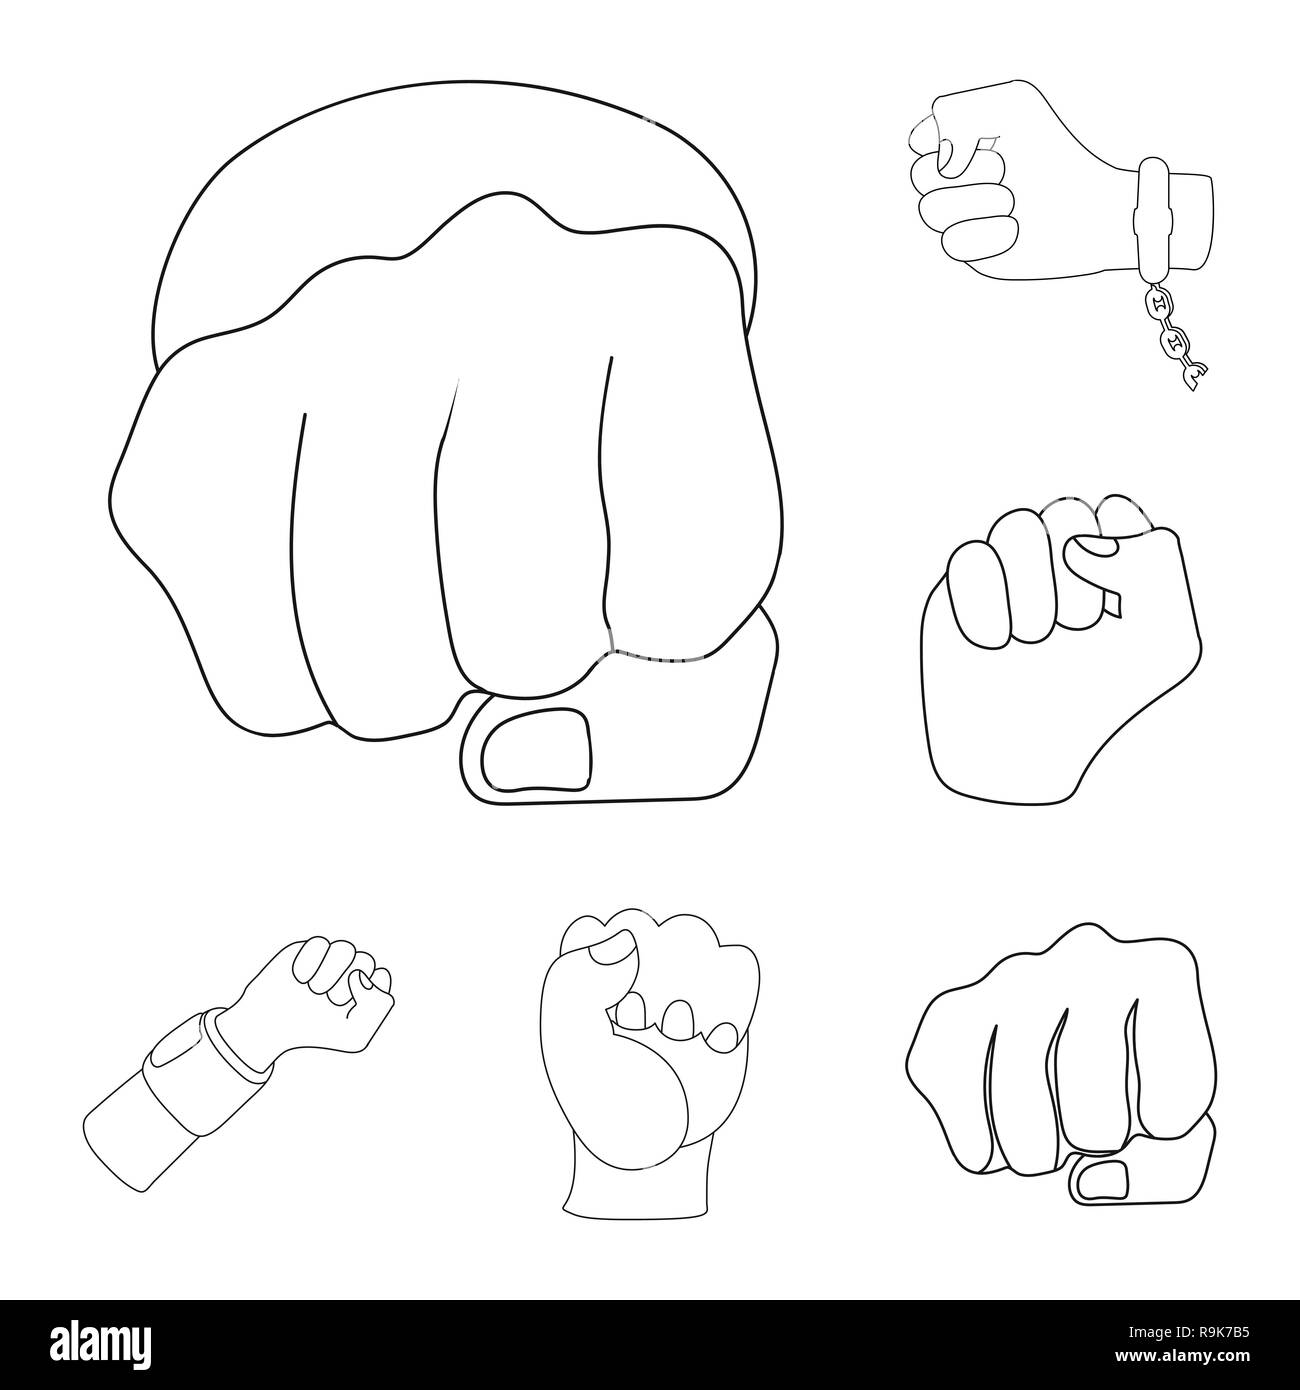 Isolated Object Of Fist And Punch Symbol Collection Of Fist And Hand Stock Symbol For Web Stock Vector Image Art Alamy